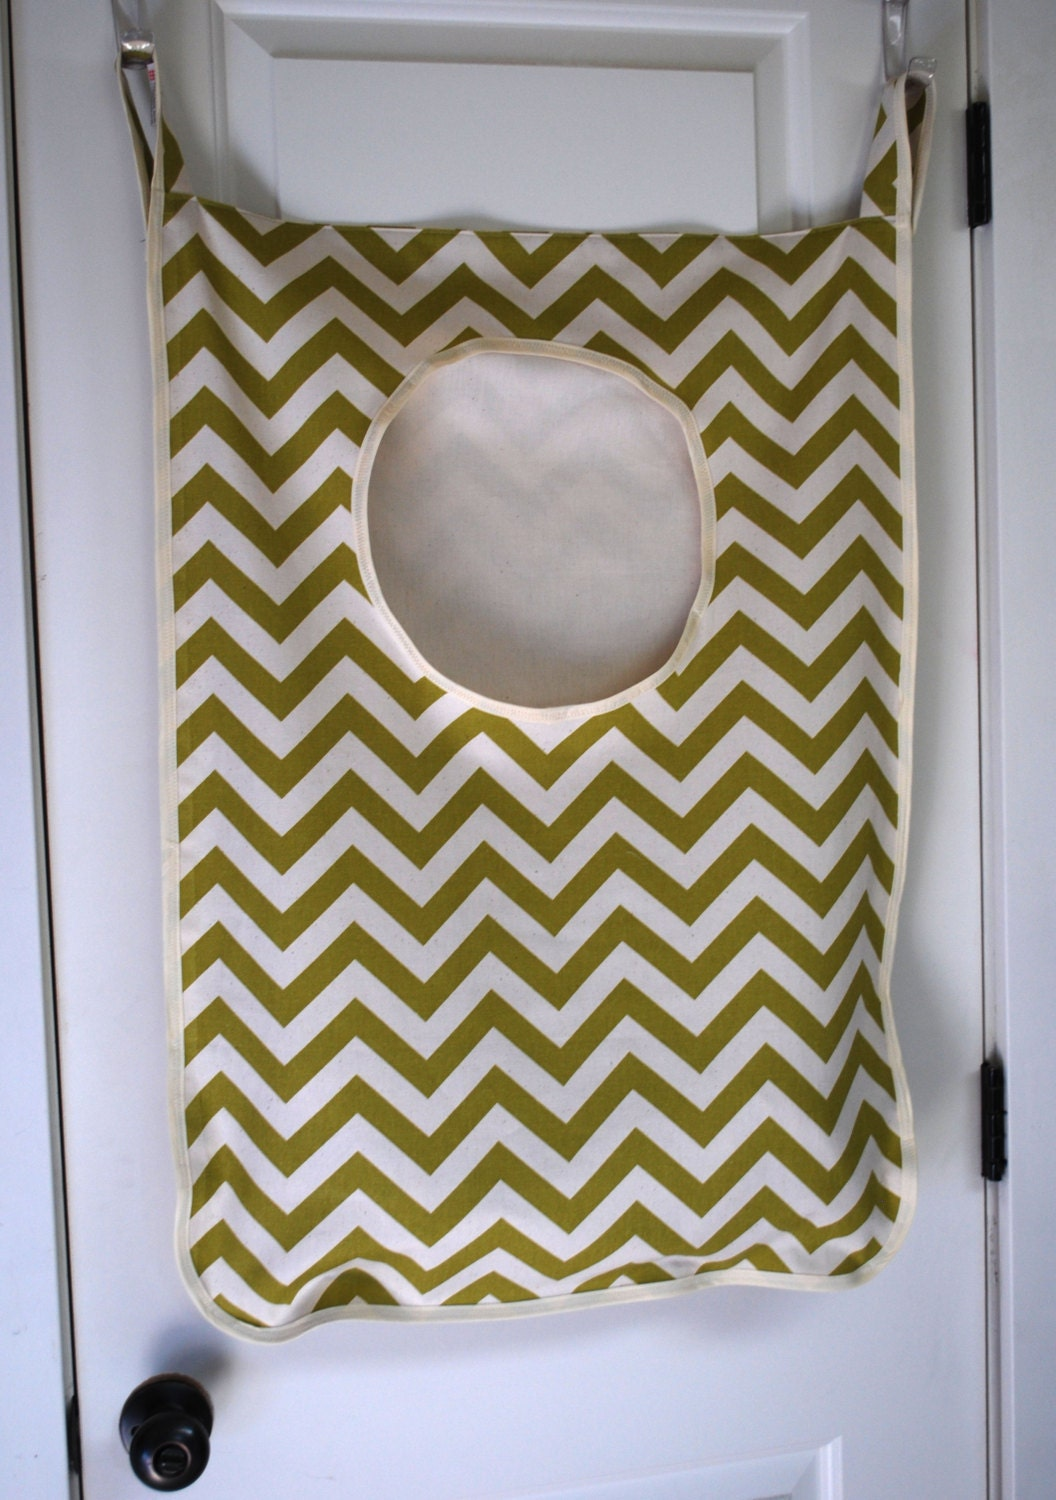 laundry bag her hanginggreen chevron fabric by